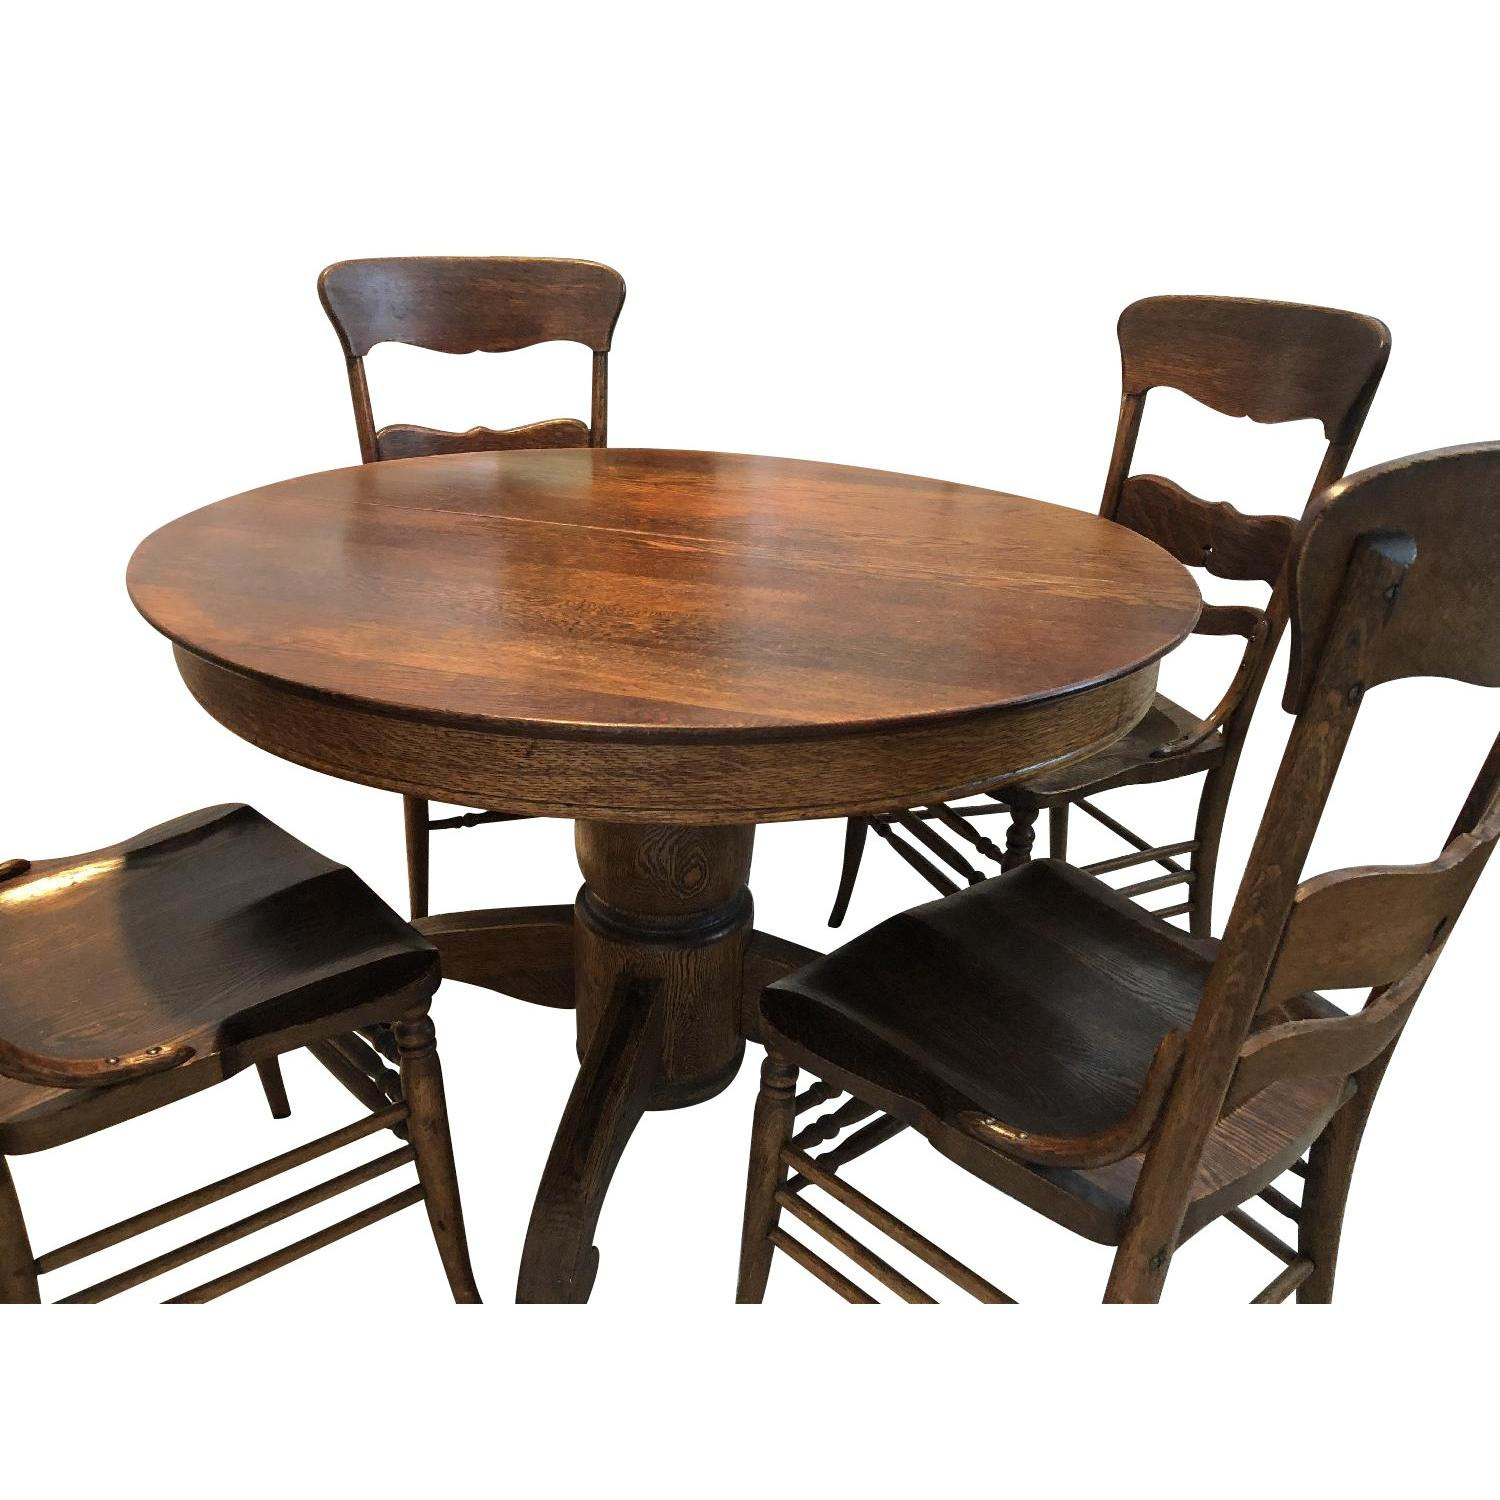 Vintage Round Wood Dining Table w/ 6 Chairs - image-0